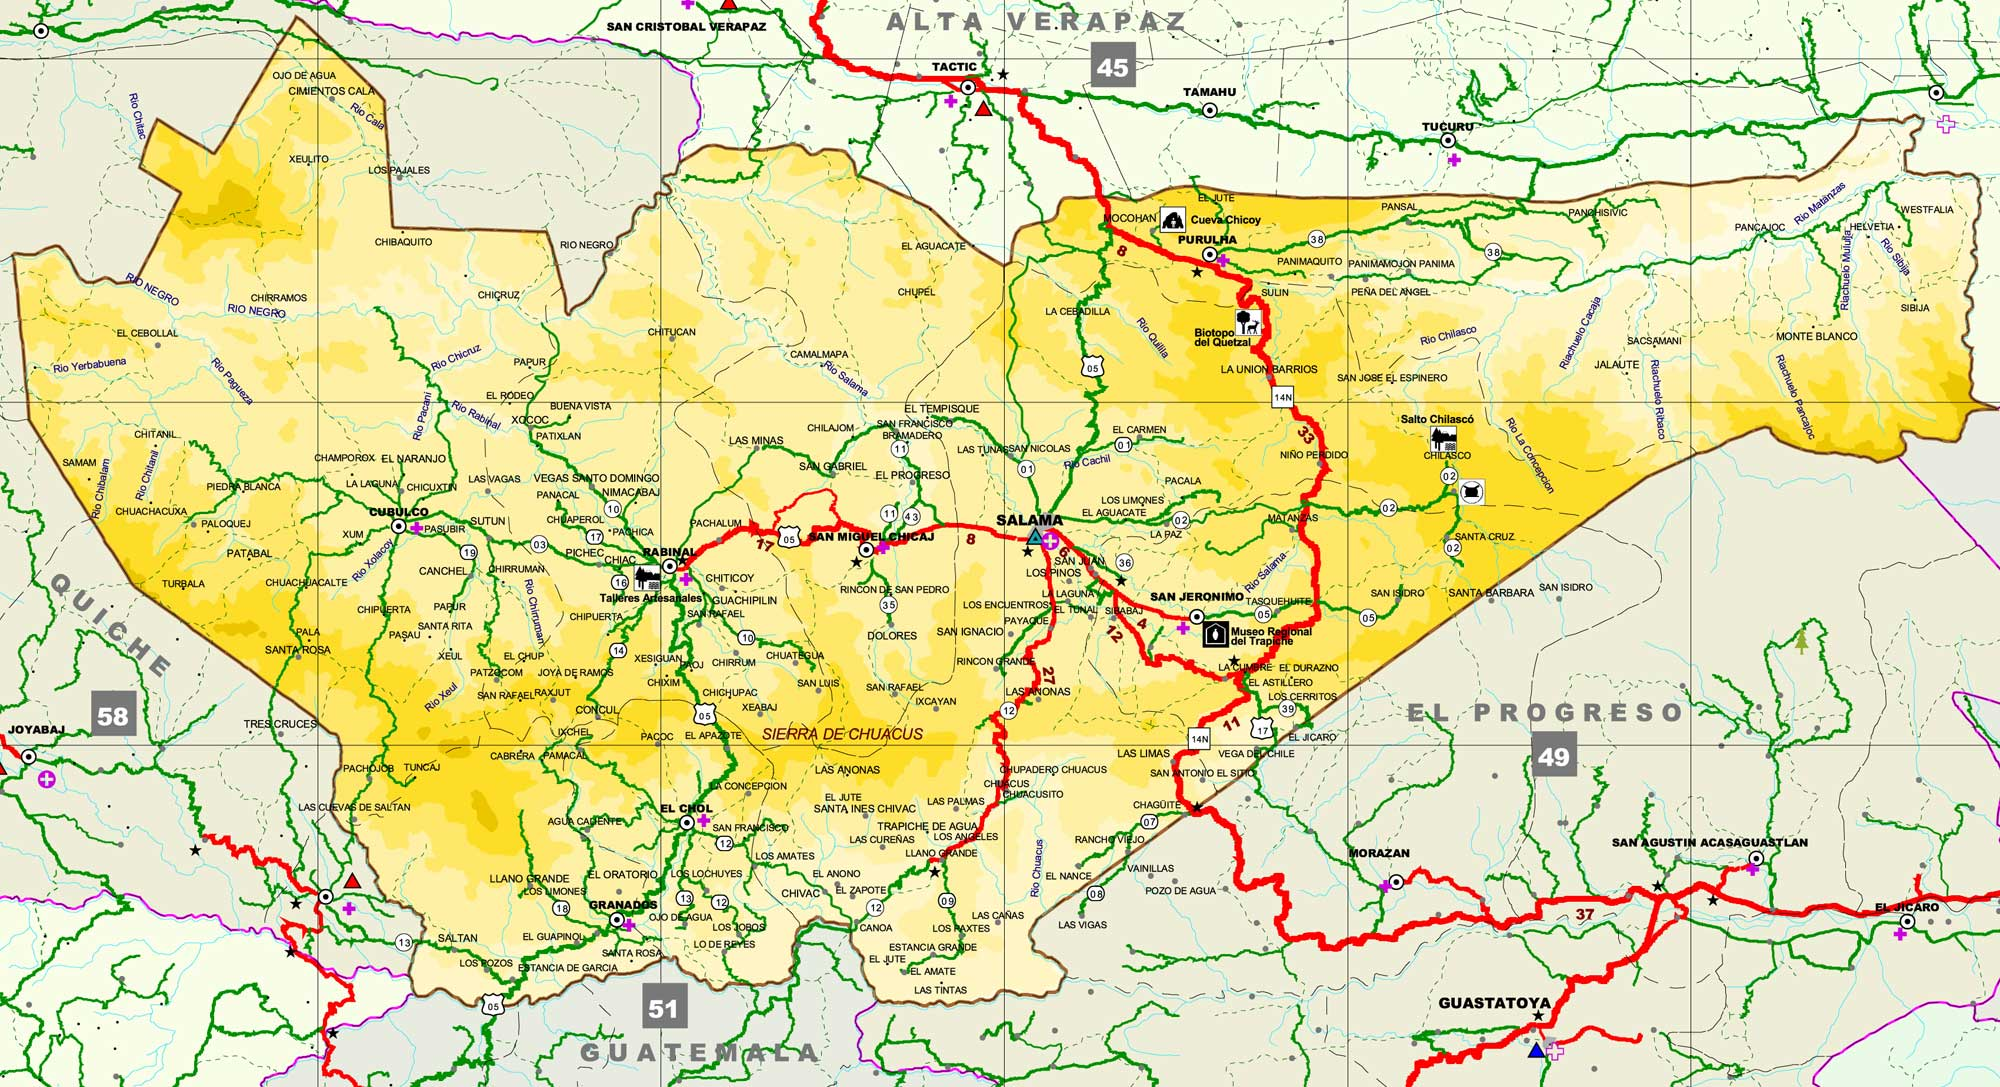 central europe map with Map Of Baja Verapaz on 383298618262238515 moreover Armenia Map moreover Galp Energia Acquires Exploration Blocks Offshore Brazil furthermore Map Of Baja Verapaz additionally China Earthquakes.